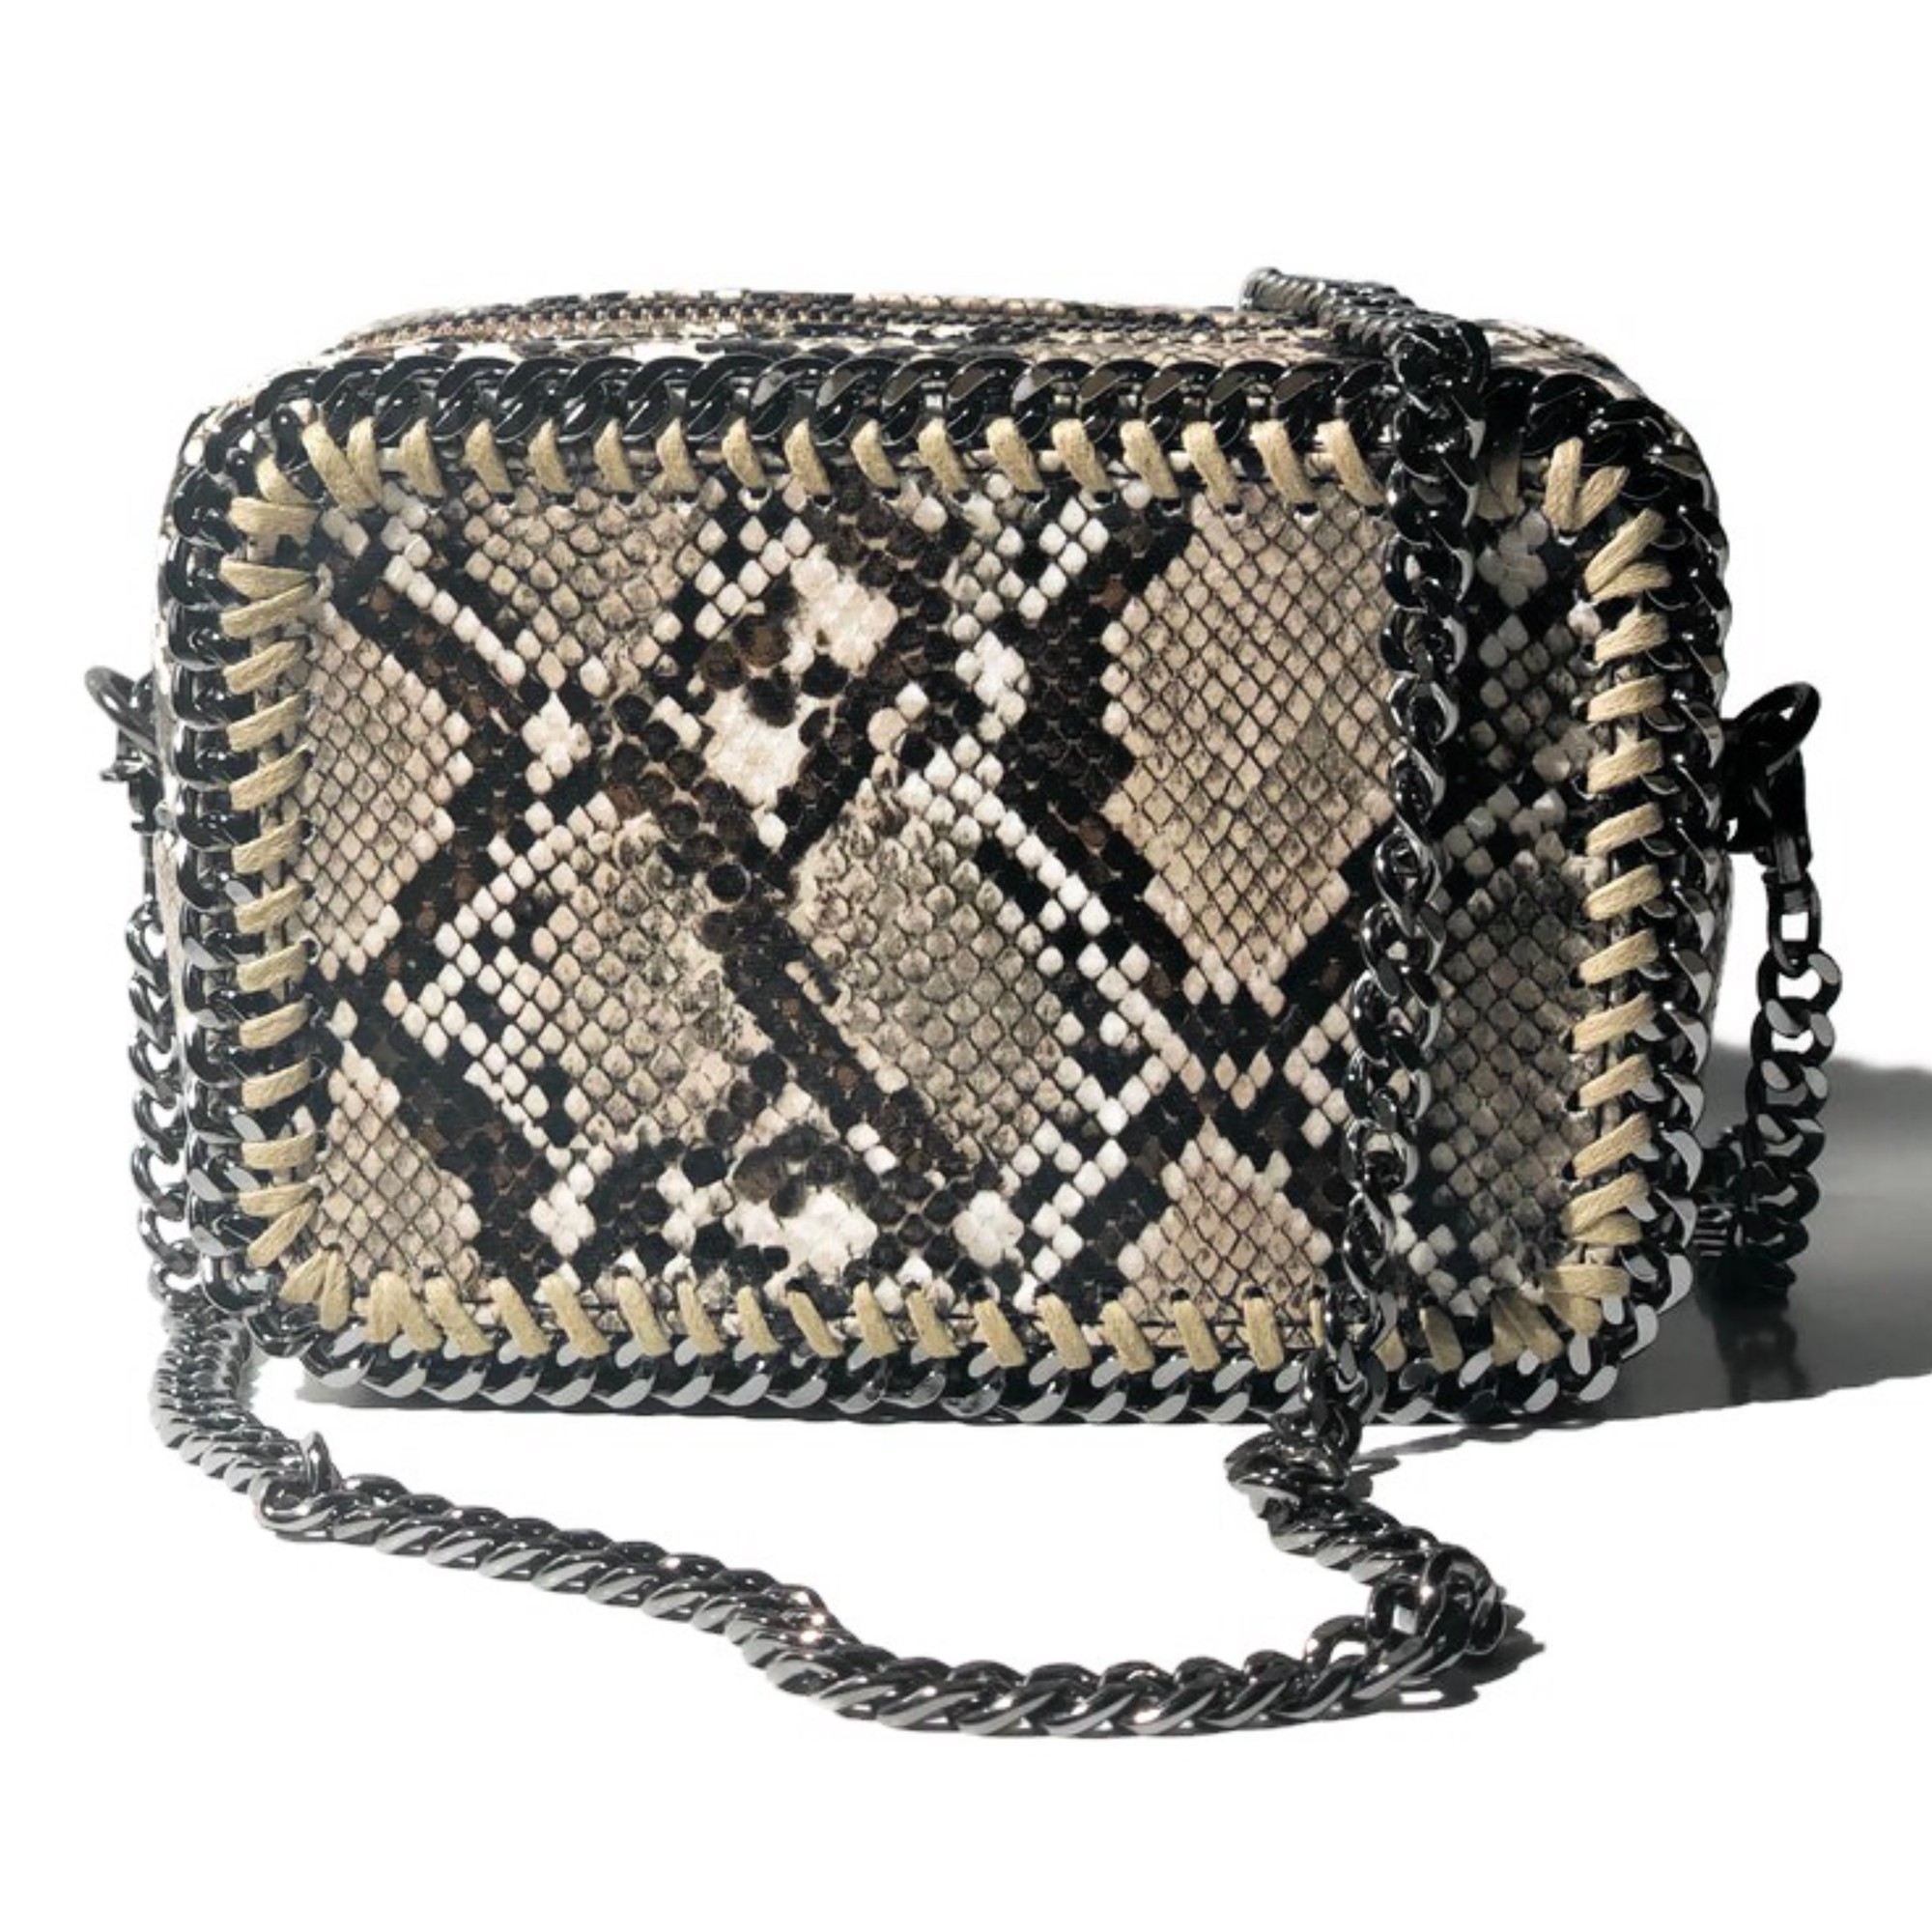 the LocoMoto Crossbody | Valley Snake POLICY Handbags